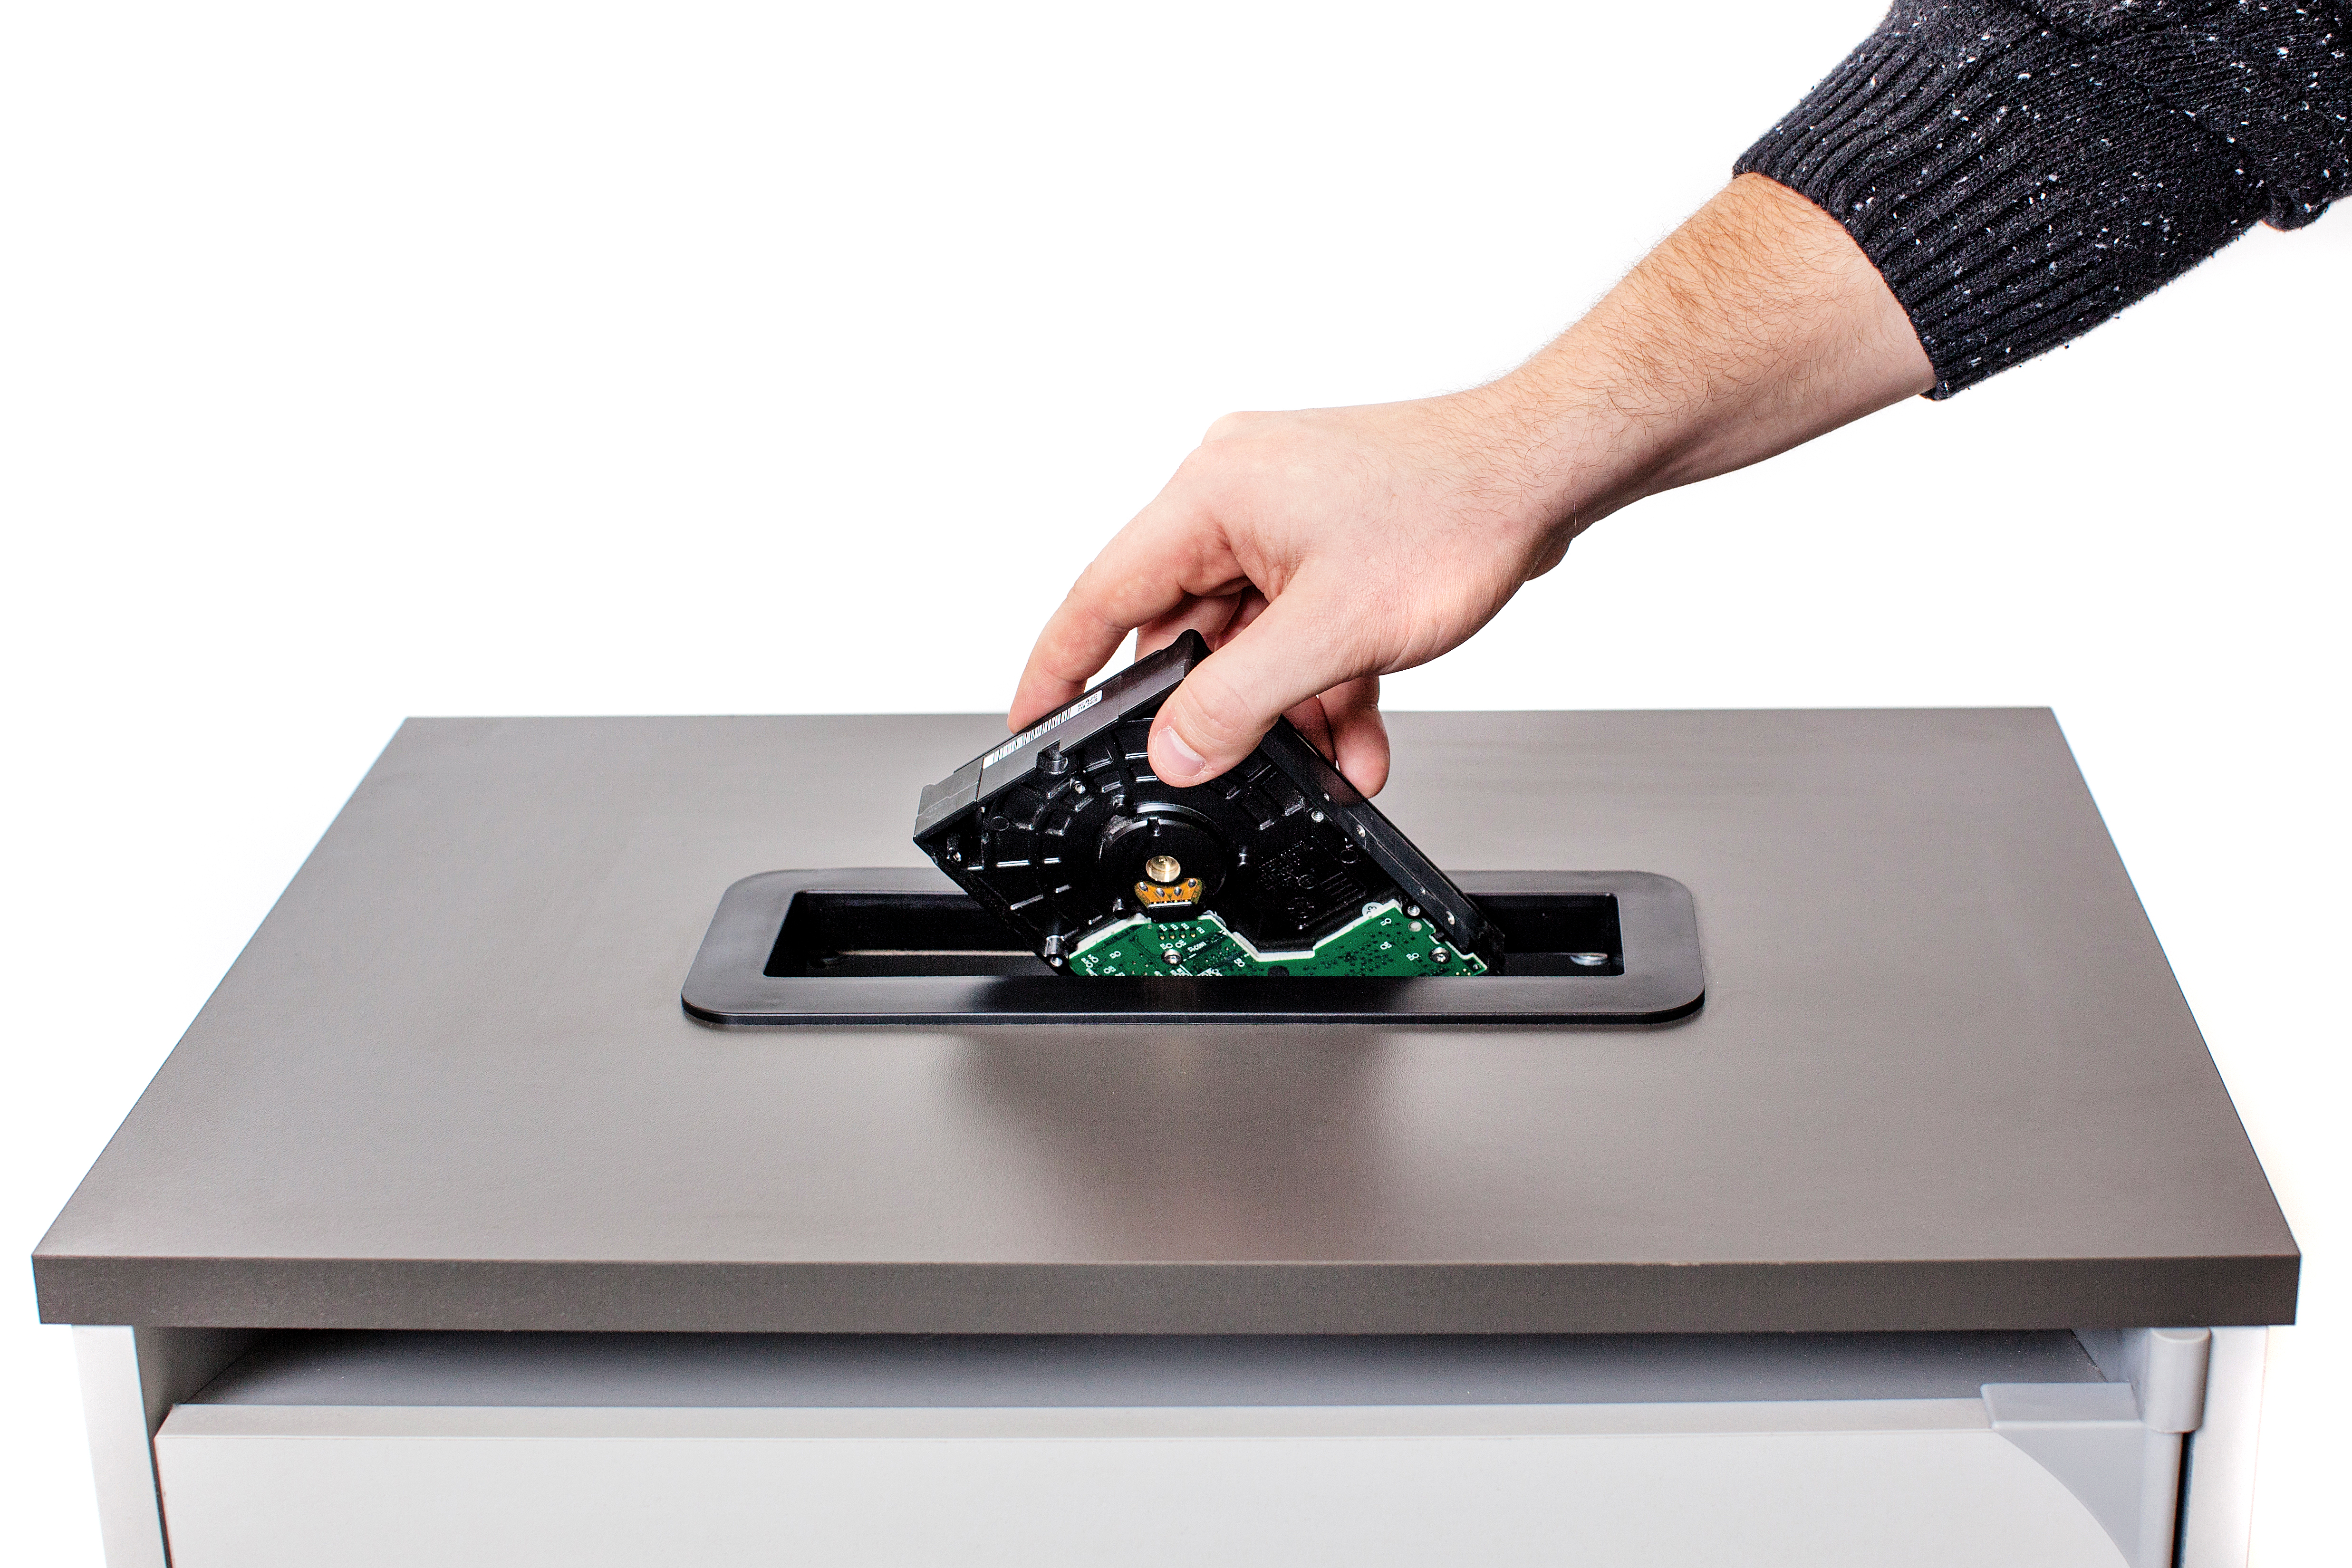 Placing hard Drive in E-Recycling Container - All Source